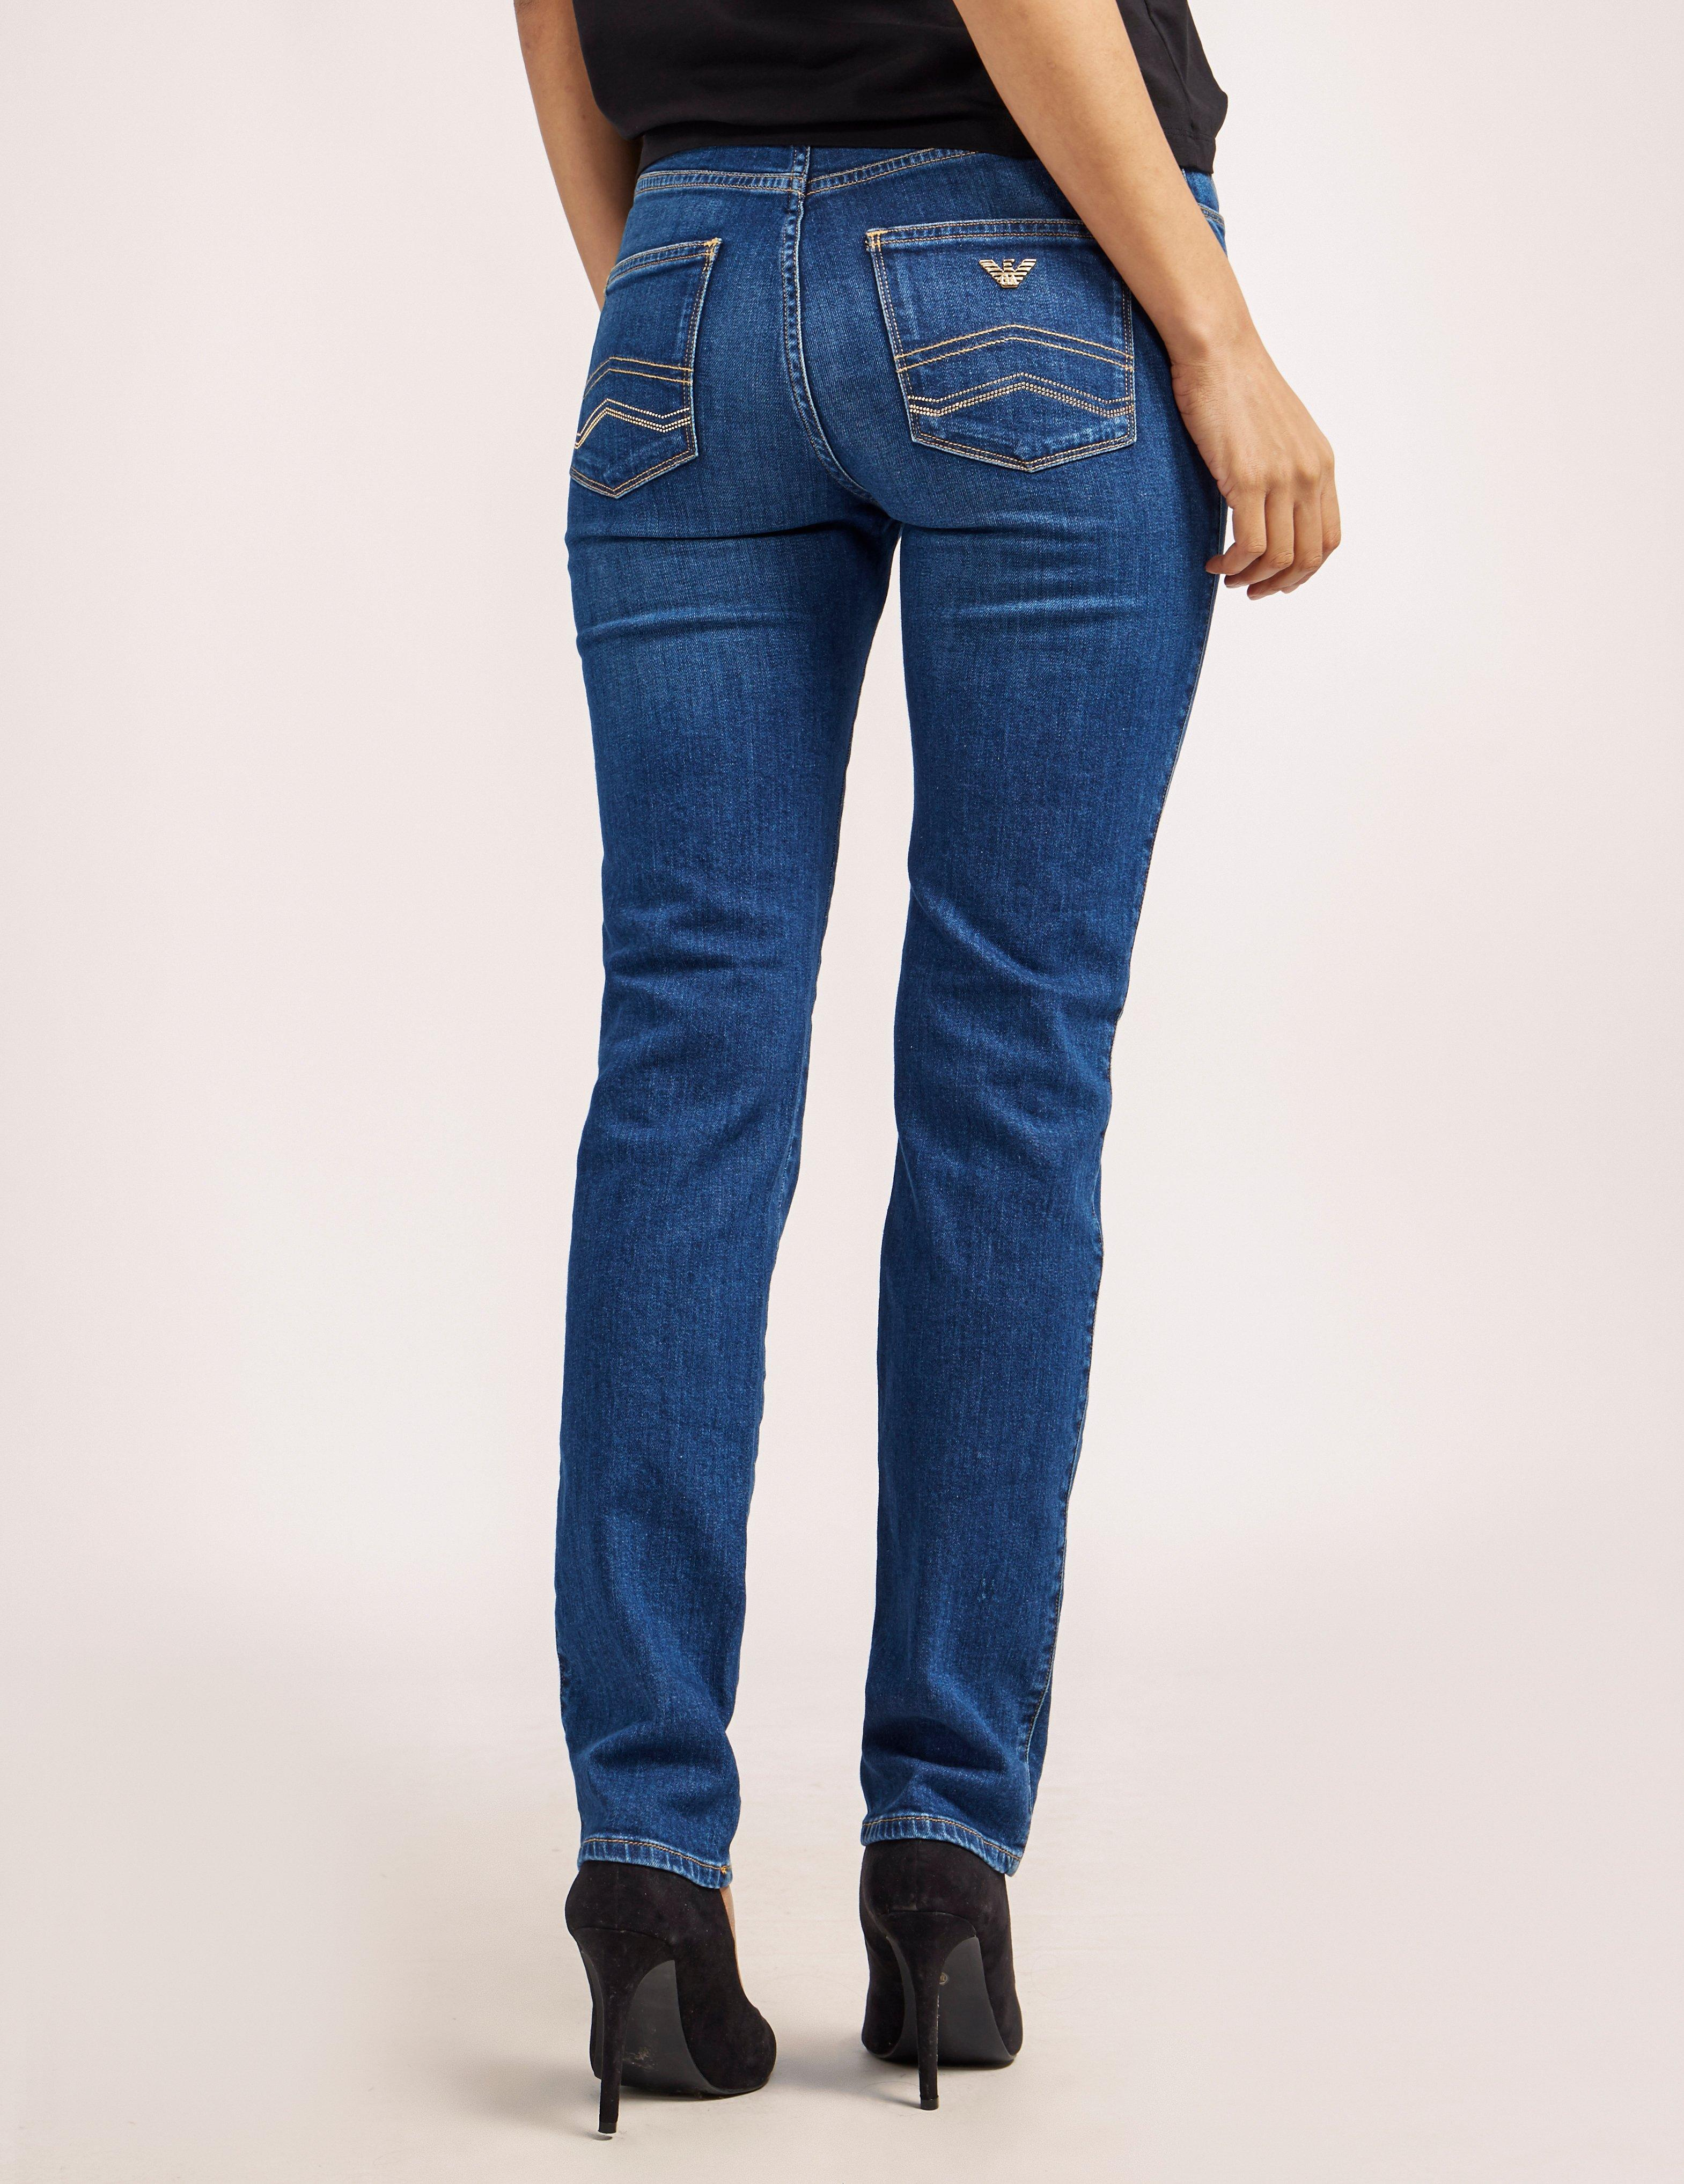 b5dbd691d50 Gallery. Previously sold at: Tessuti UK · Women's High Waisted Jeans